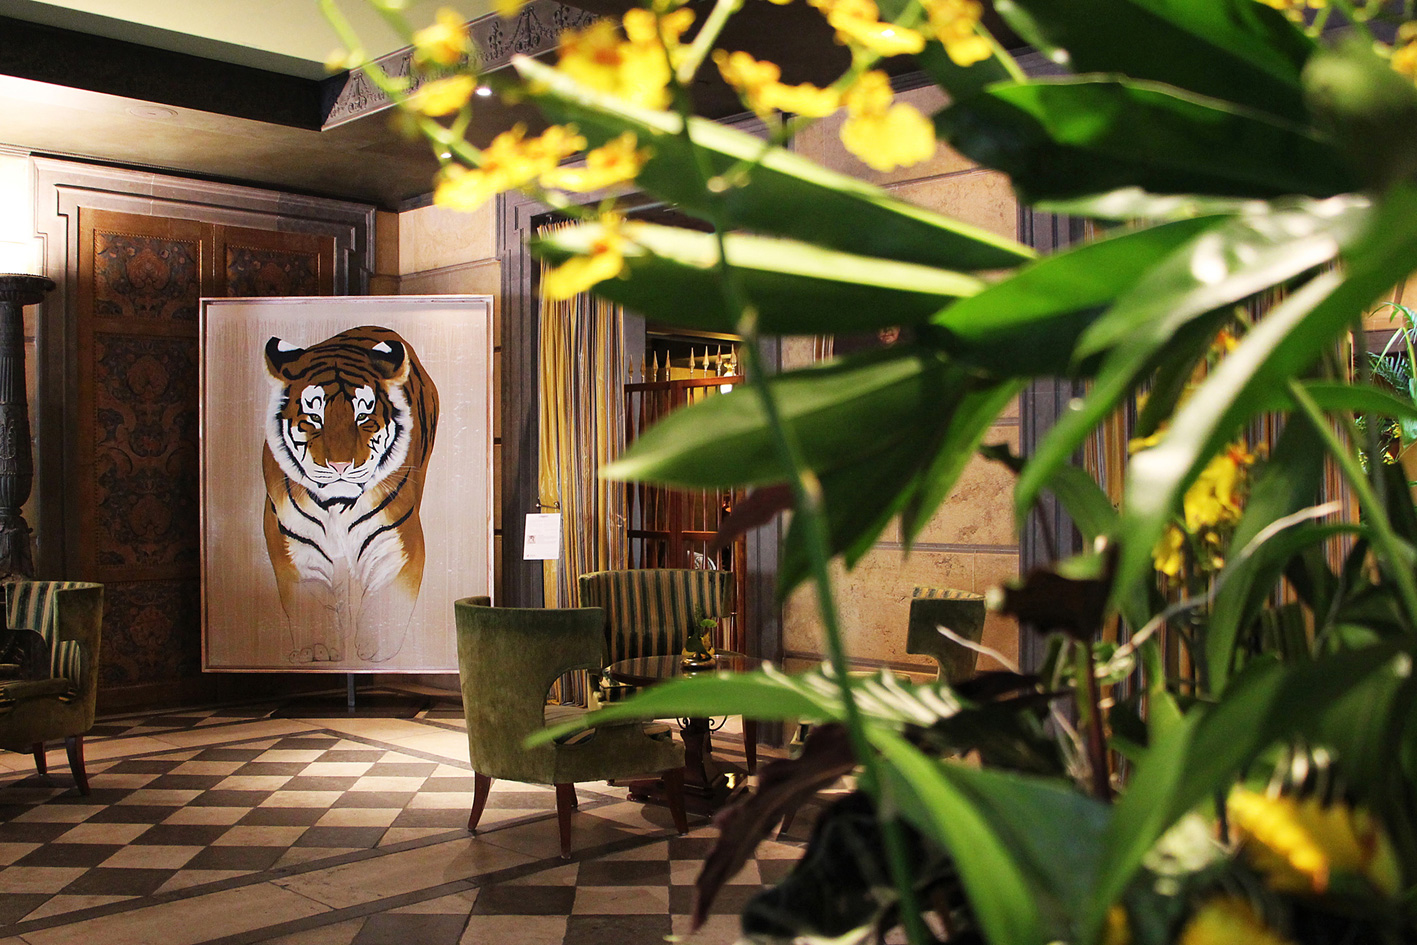 HOTEL METROPOLE MONACO tiger-siberian-amur-threatened-endangered-extinction- Thierry Bisch painter animals painting art decoration hotel design interior luxury nature biodiversity conservation